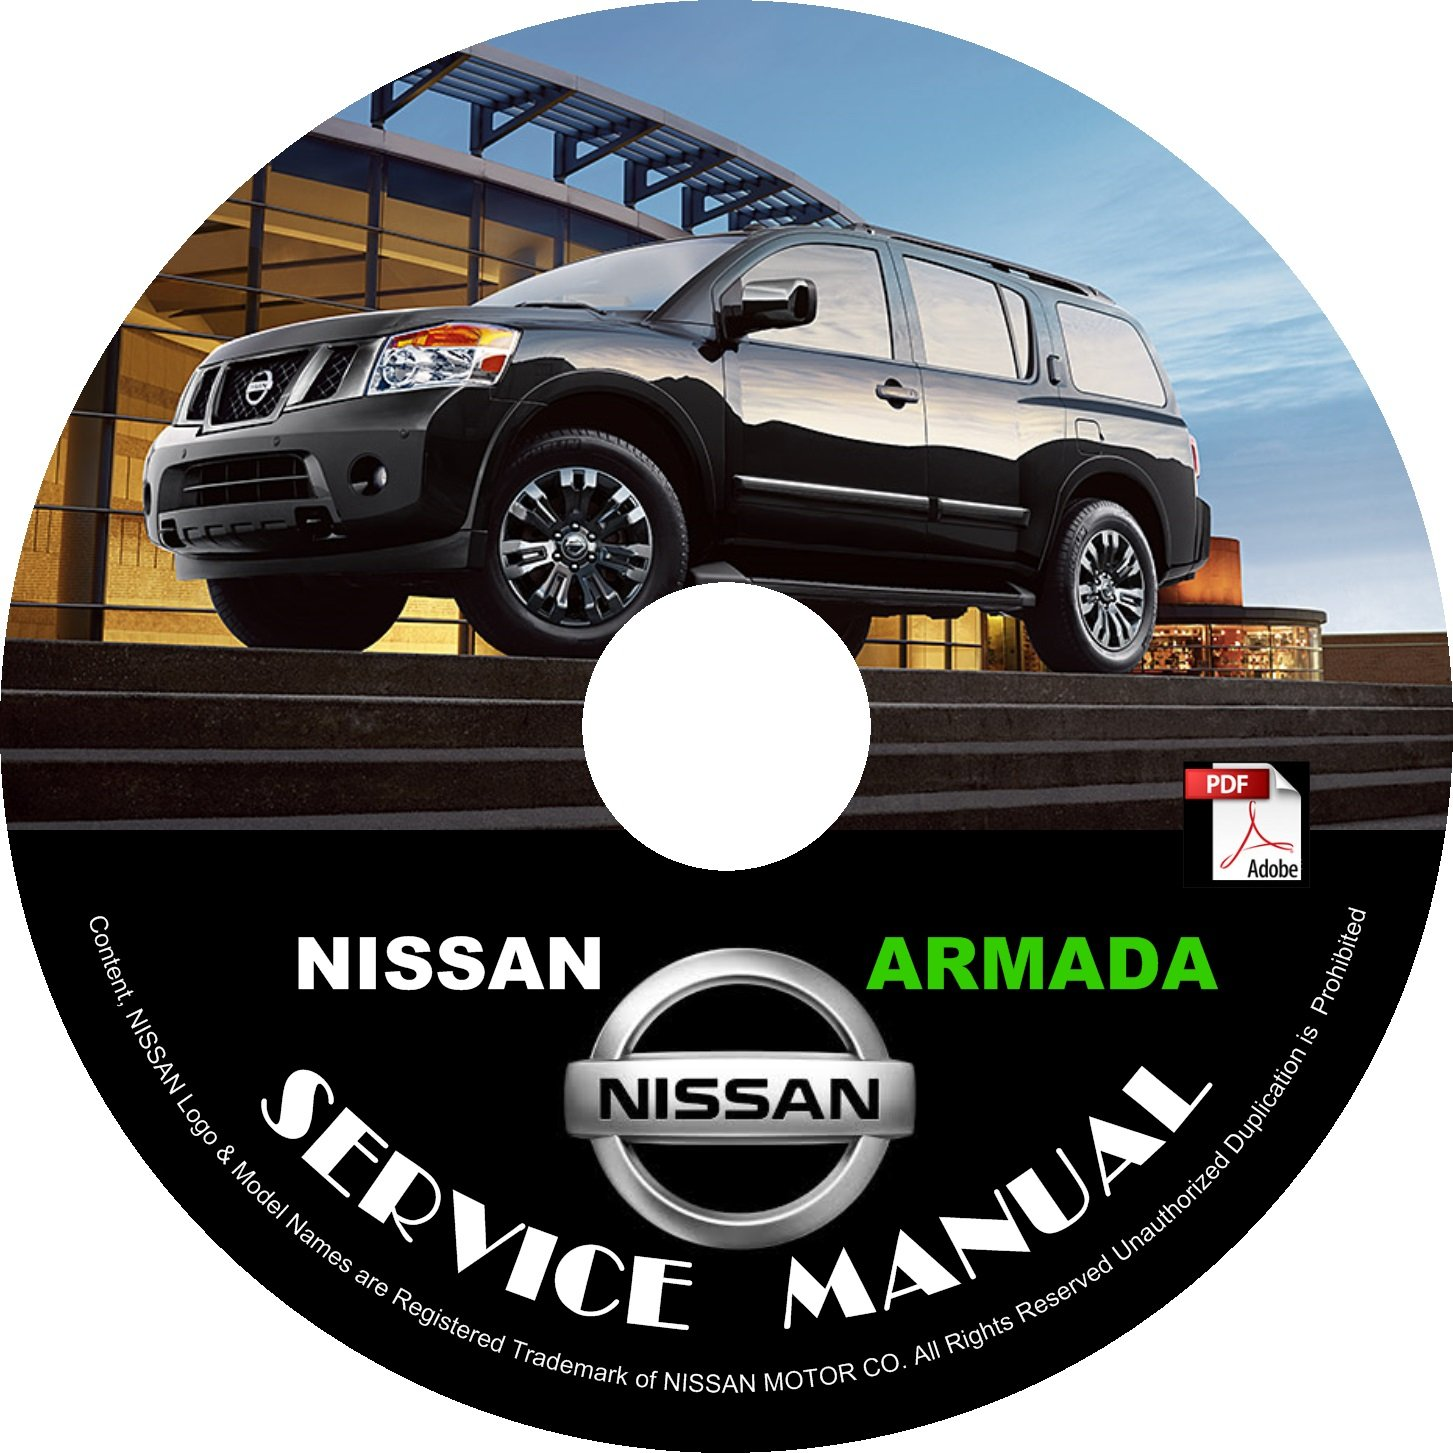 2013 Nissan Armada Factory Service Repair Shop Manual on CD